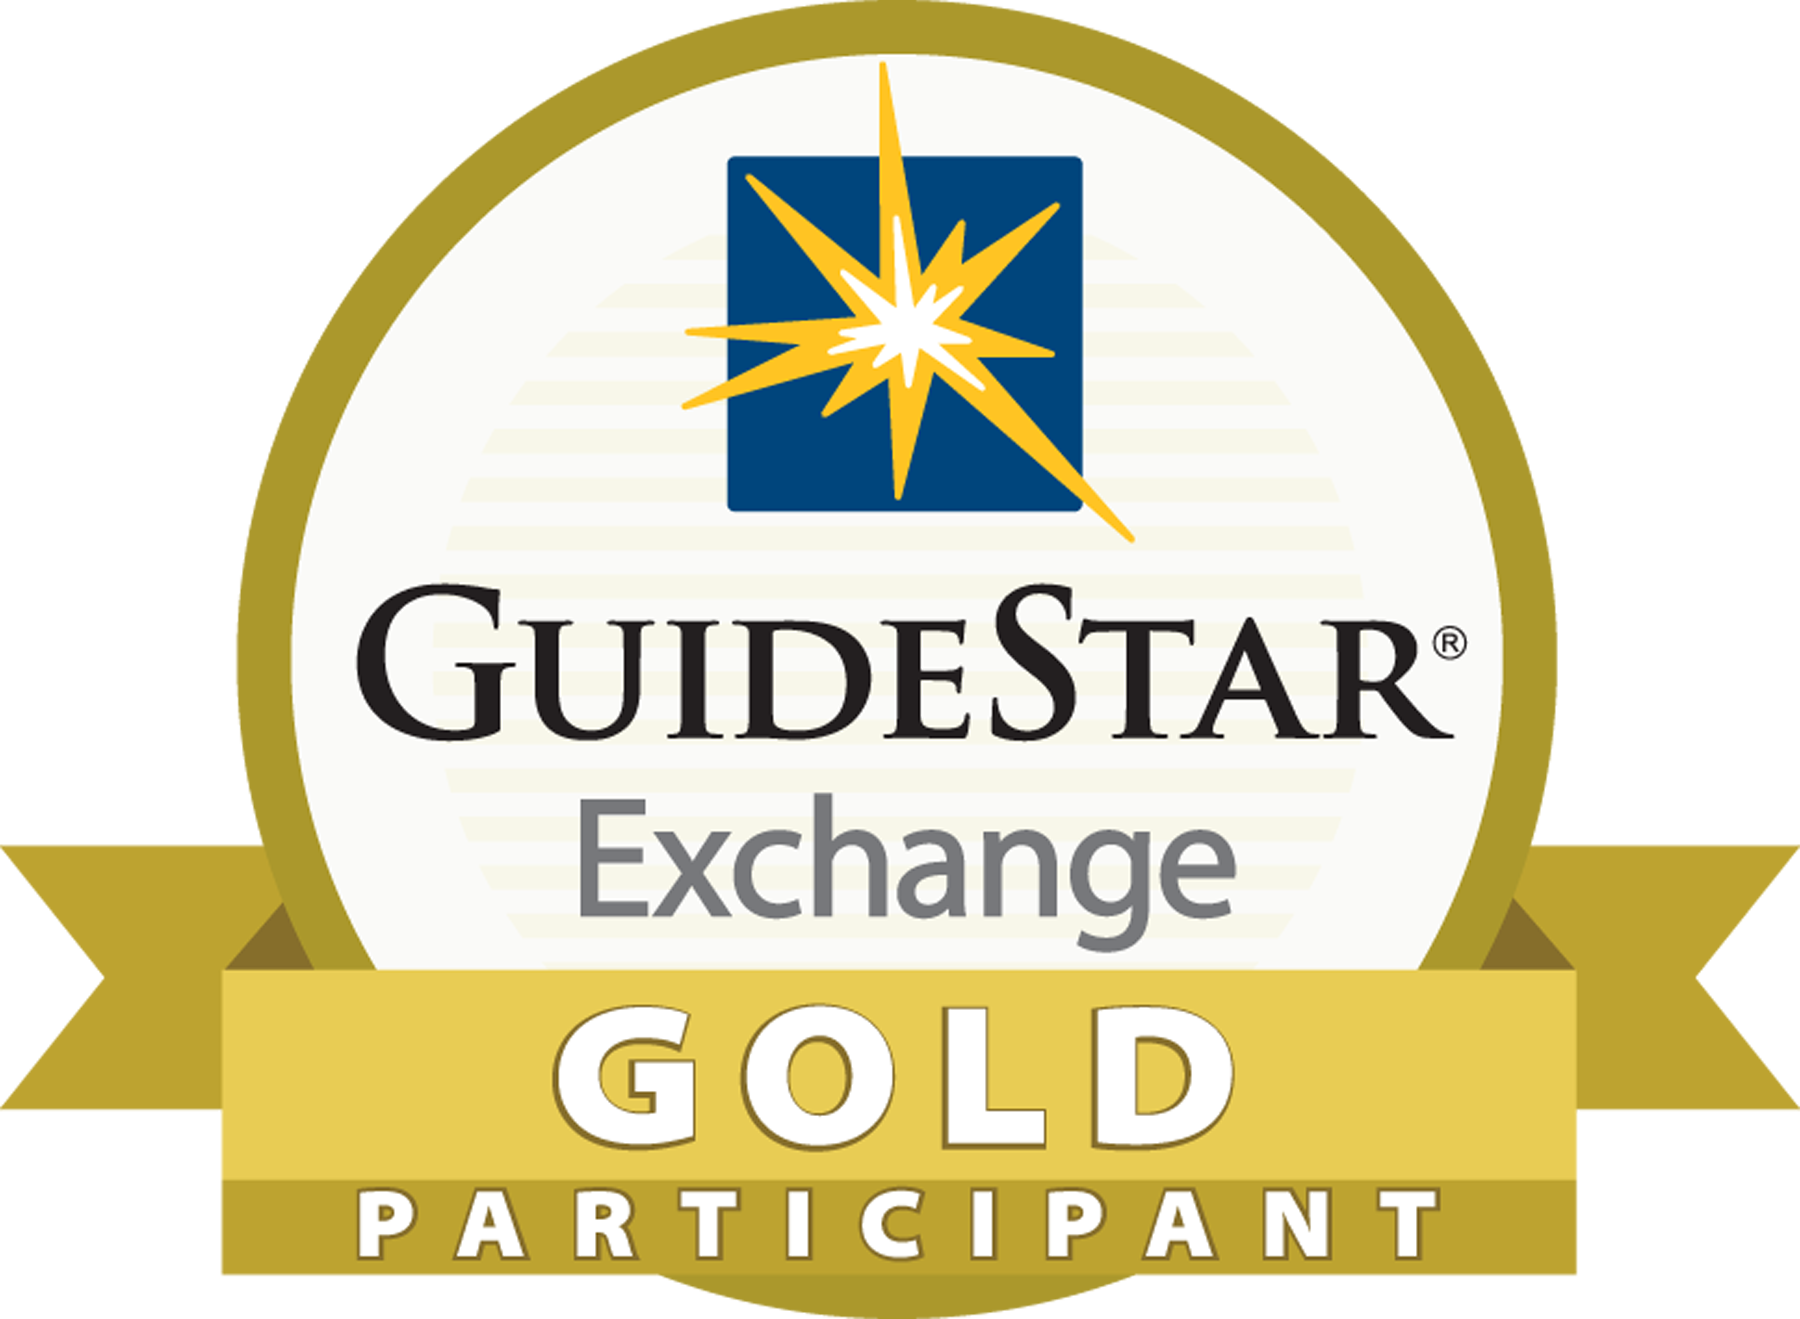 PBHR is a GuideStar Exchange Gold Participant